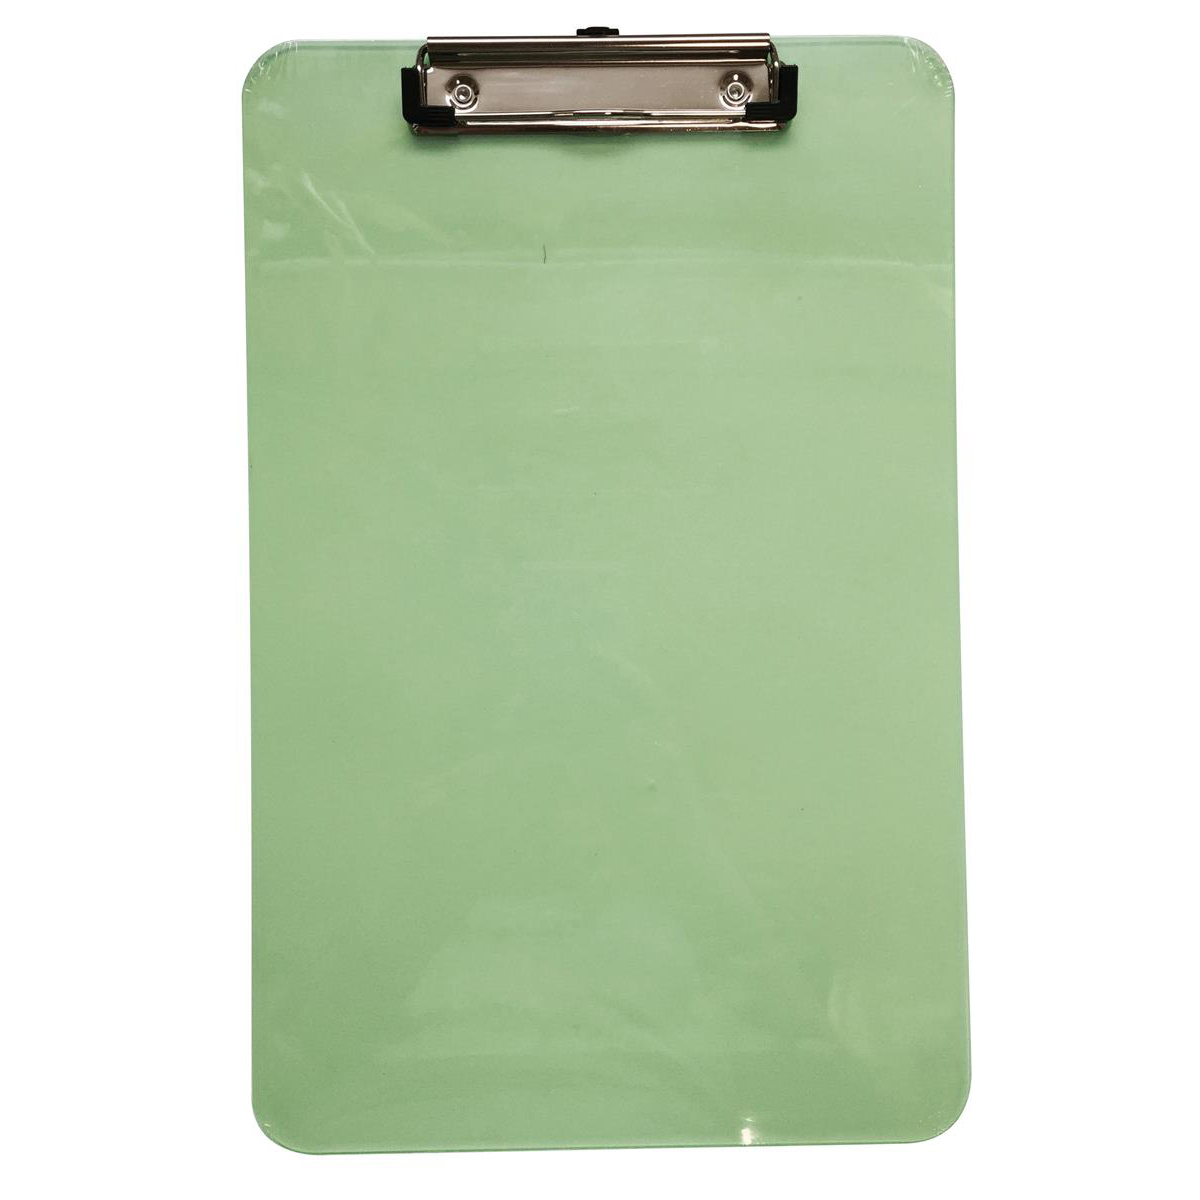 Image for 5 Star Office Clipboard Polypropylene Shatterproof Pink or Green or Turquoise